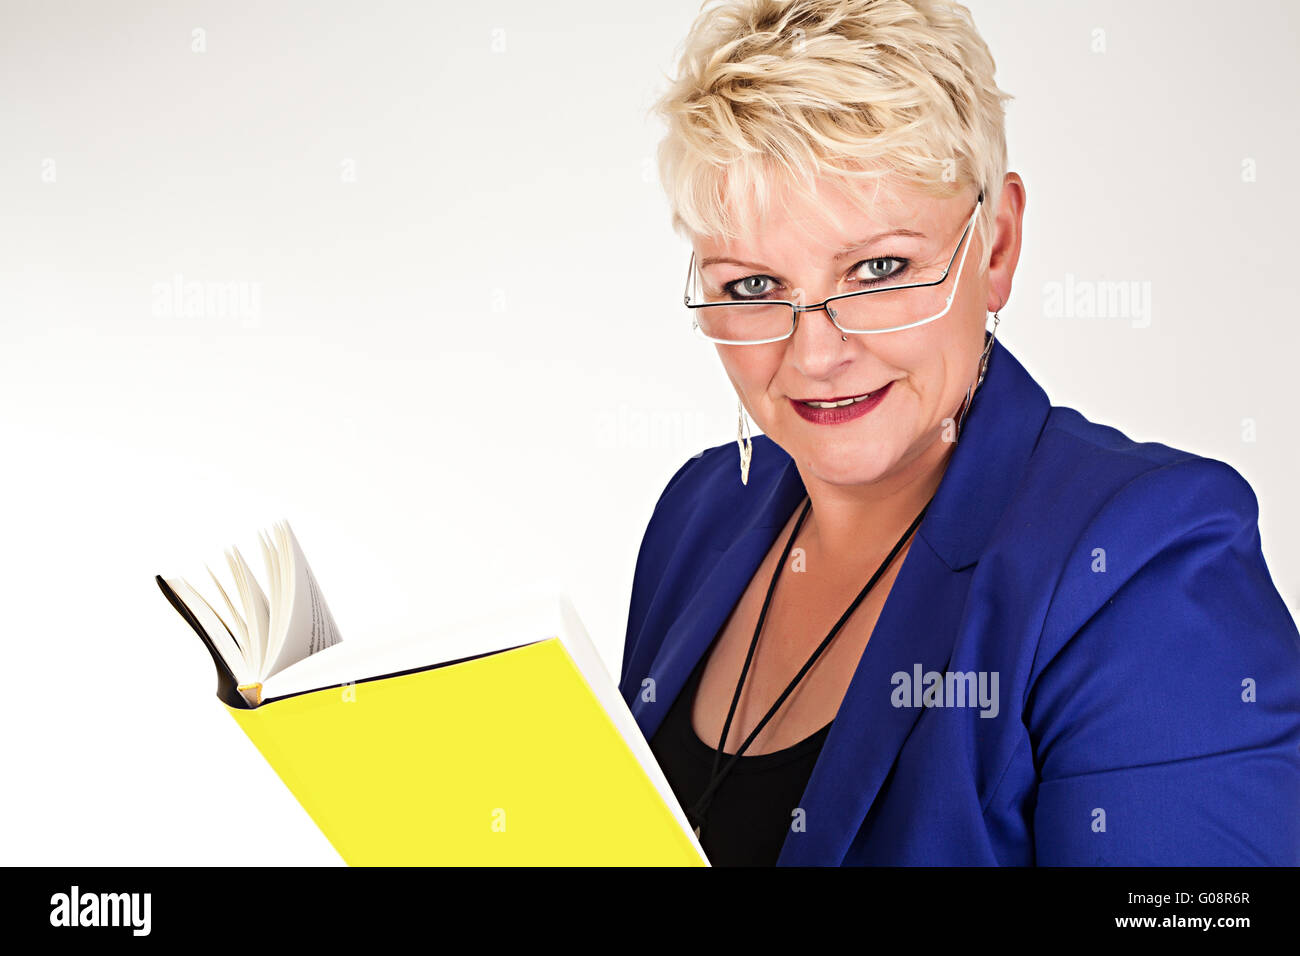 middelaged business woman in jacket with glasses r Stock Photo